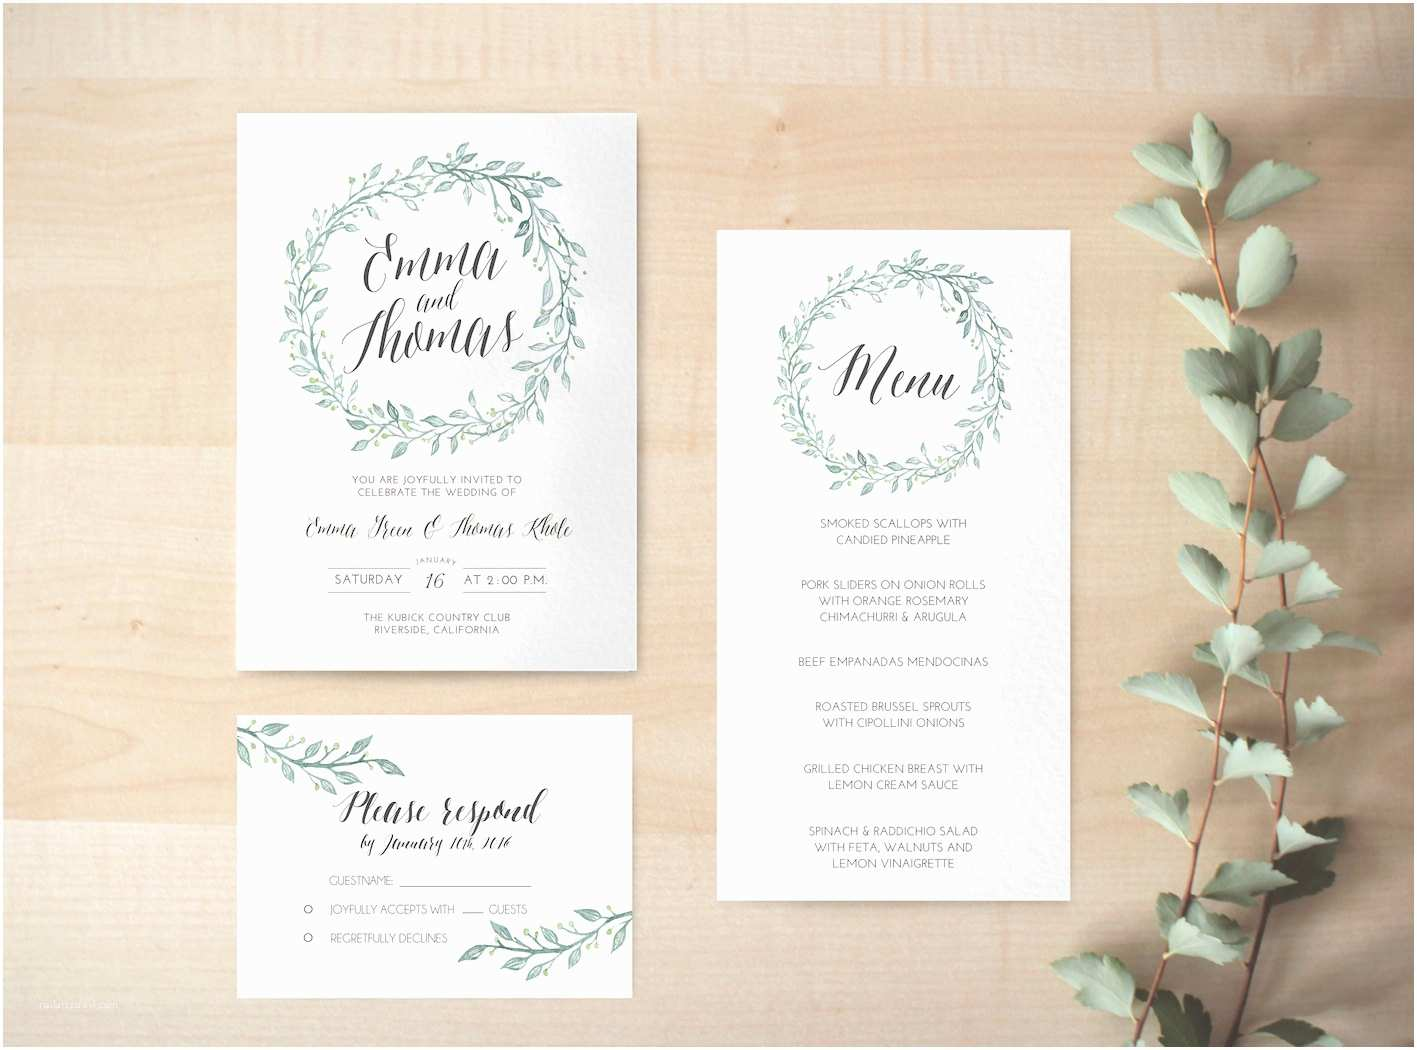 Digital Wedding Invitations Digital Wedding Invitation Printable Floral Invitation